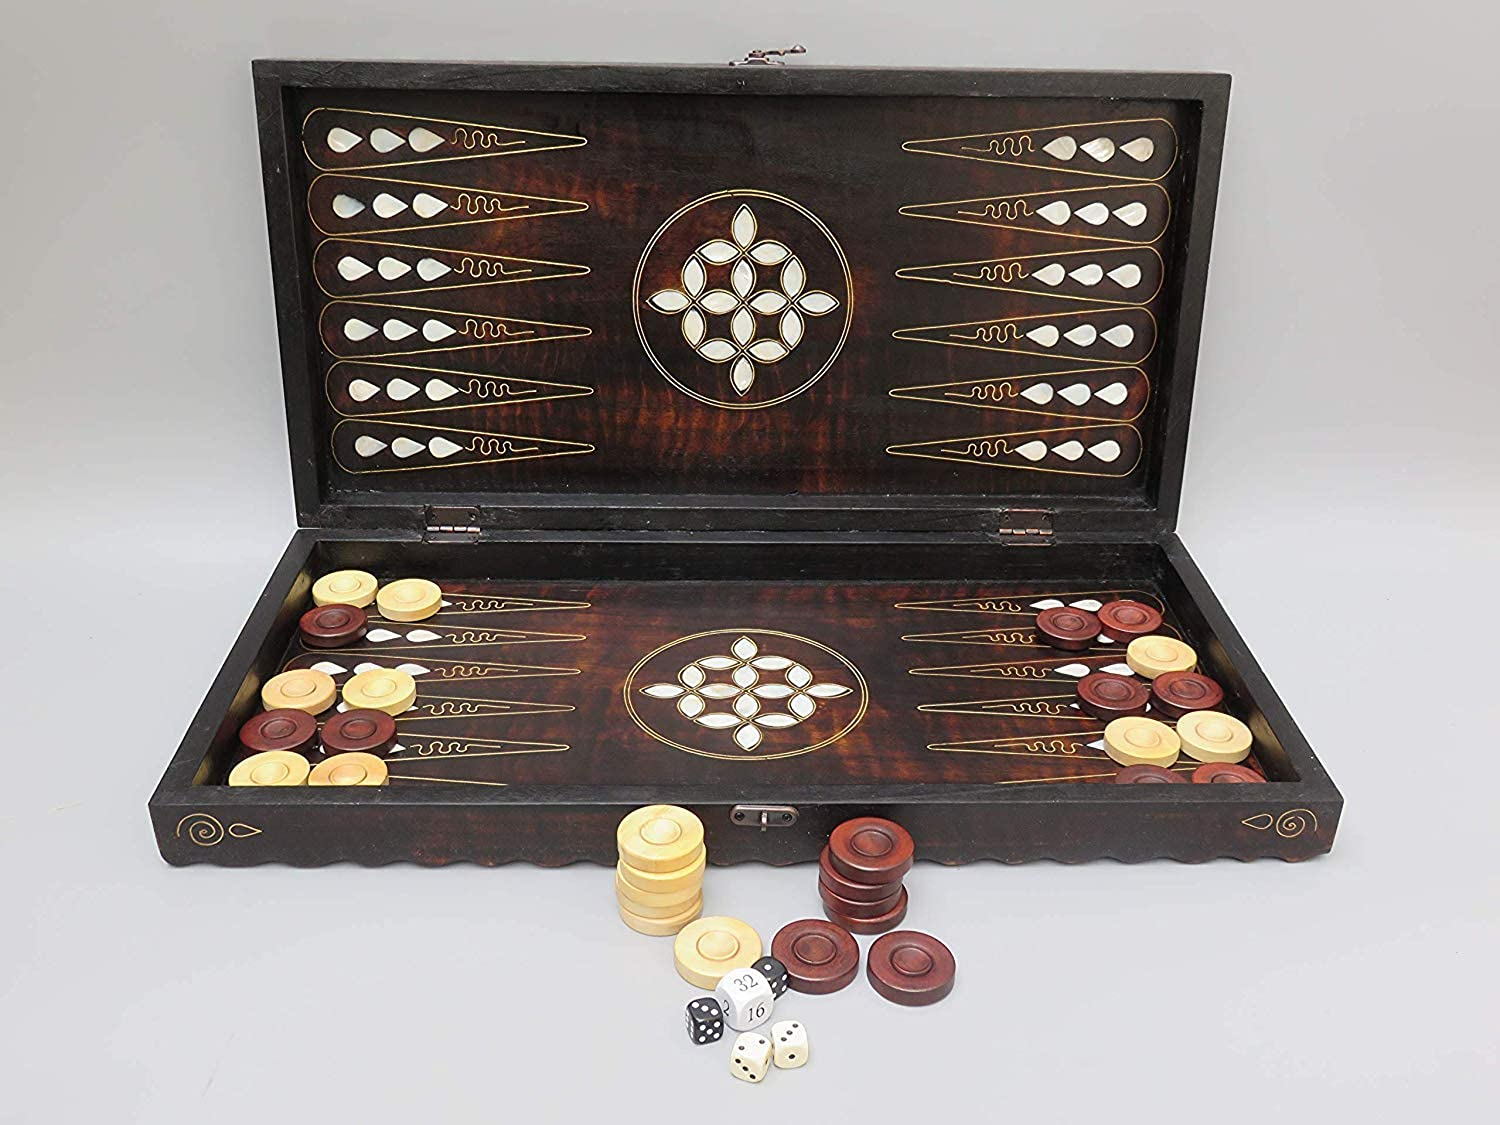 Chessgammon BACKGAMMON SET INLAID MOTHER OF PEARL INTARSIA FOLDABLE STORAGE HANDMADE WOODEN BOARD TRADITIONAL ADULTS OR KIDS FAMILY OUTDOOR TRAVEL HOLIDAY GAME WITH DOUBLING DICES